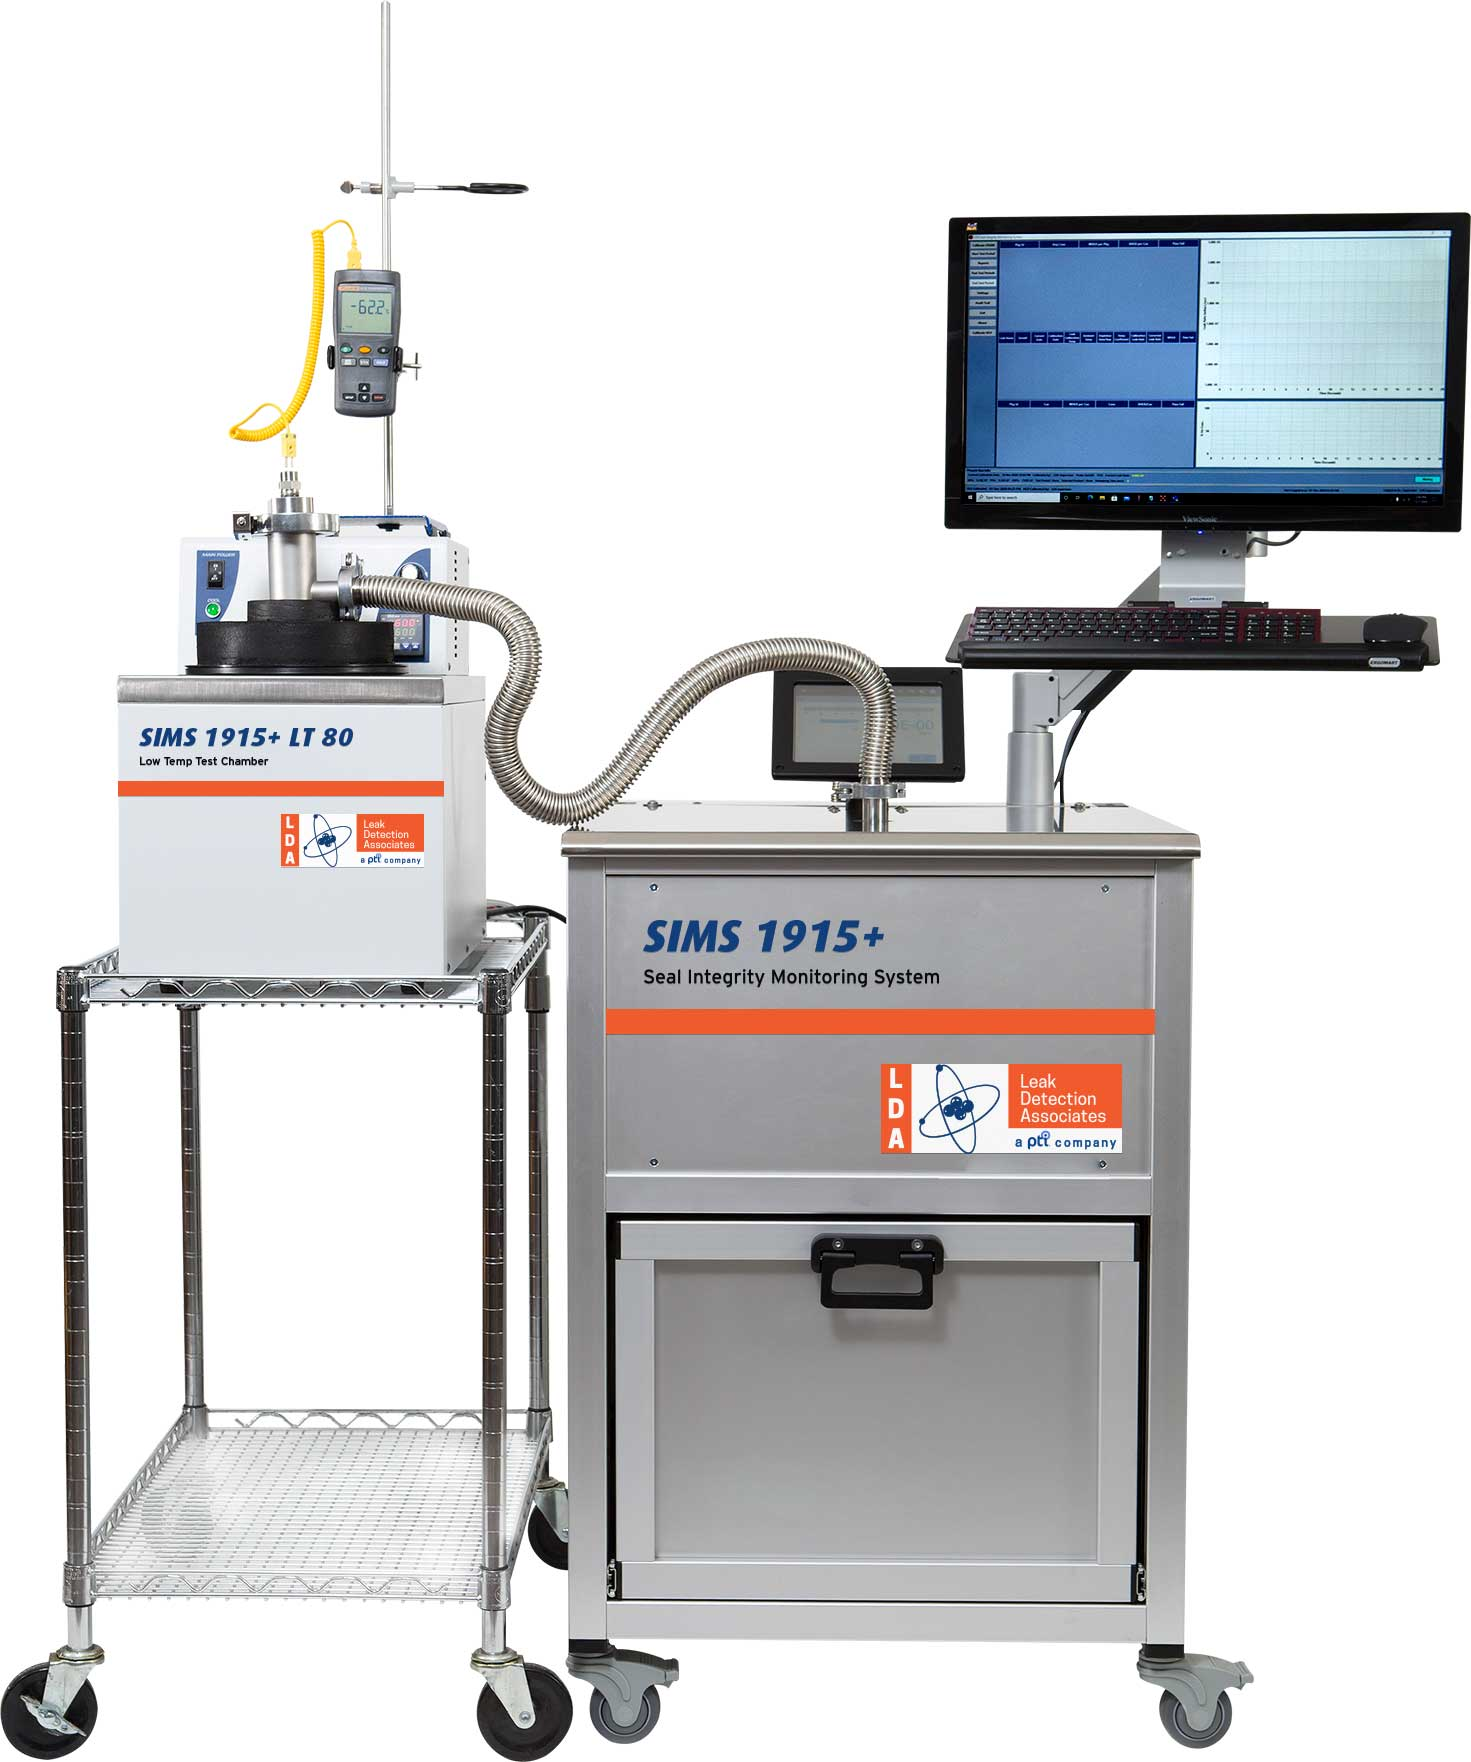 helium leak detection SIMS 1915+ with LT 50 Chiller